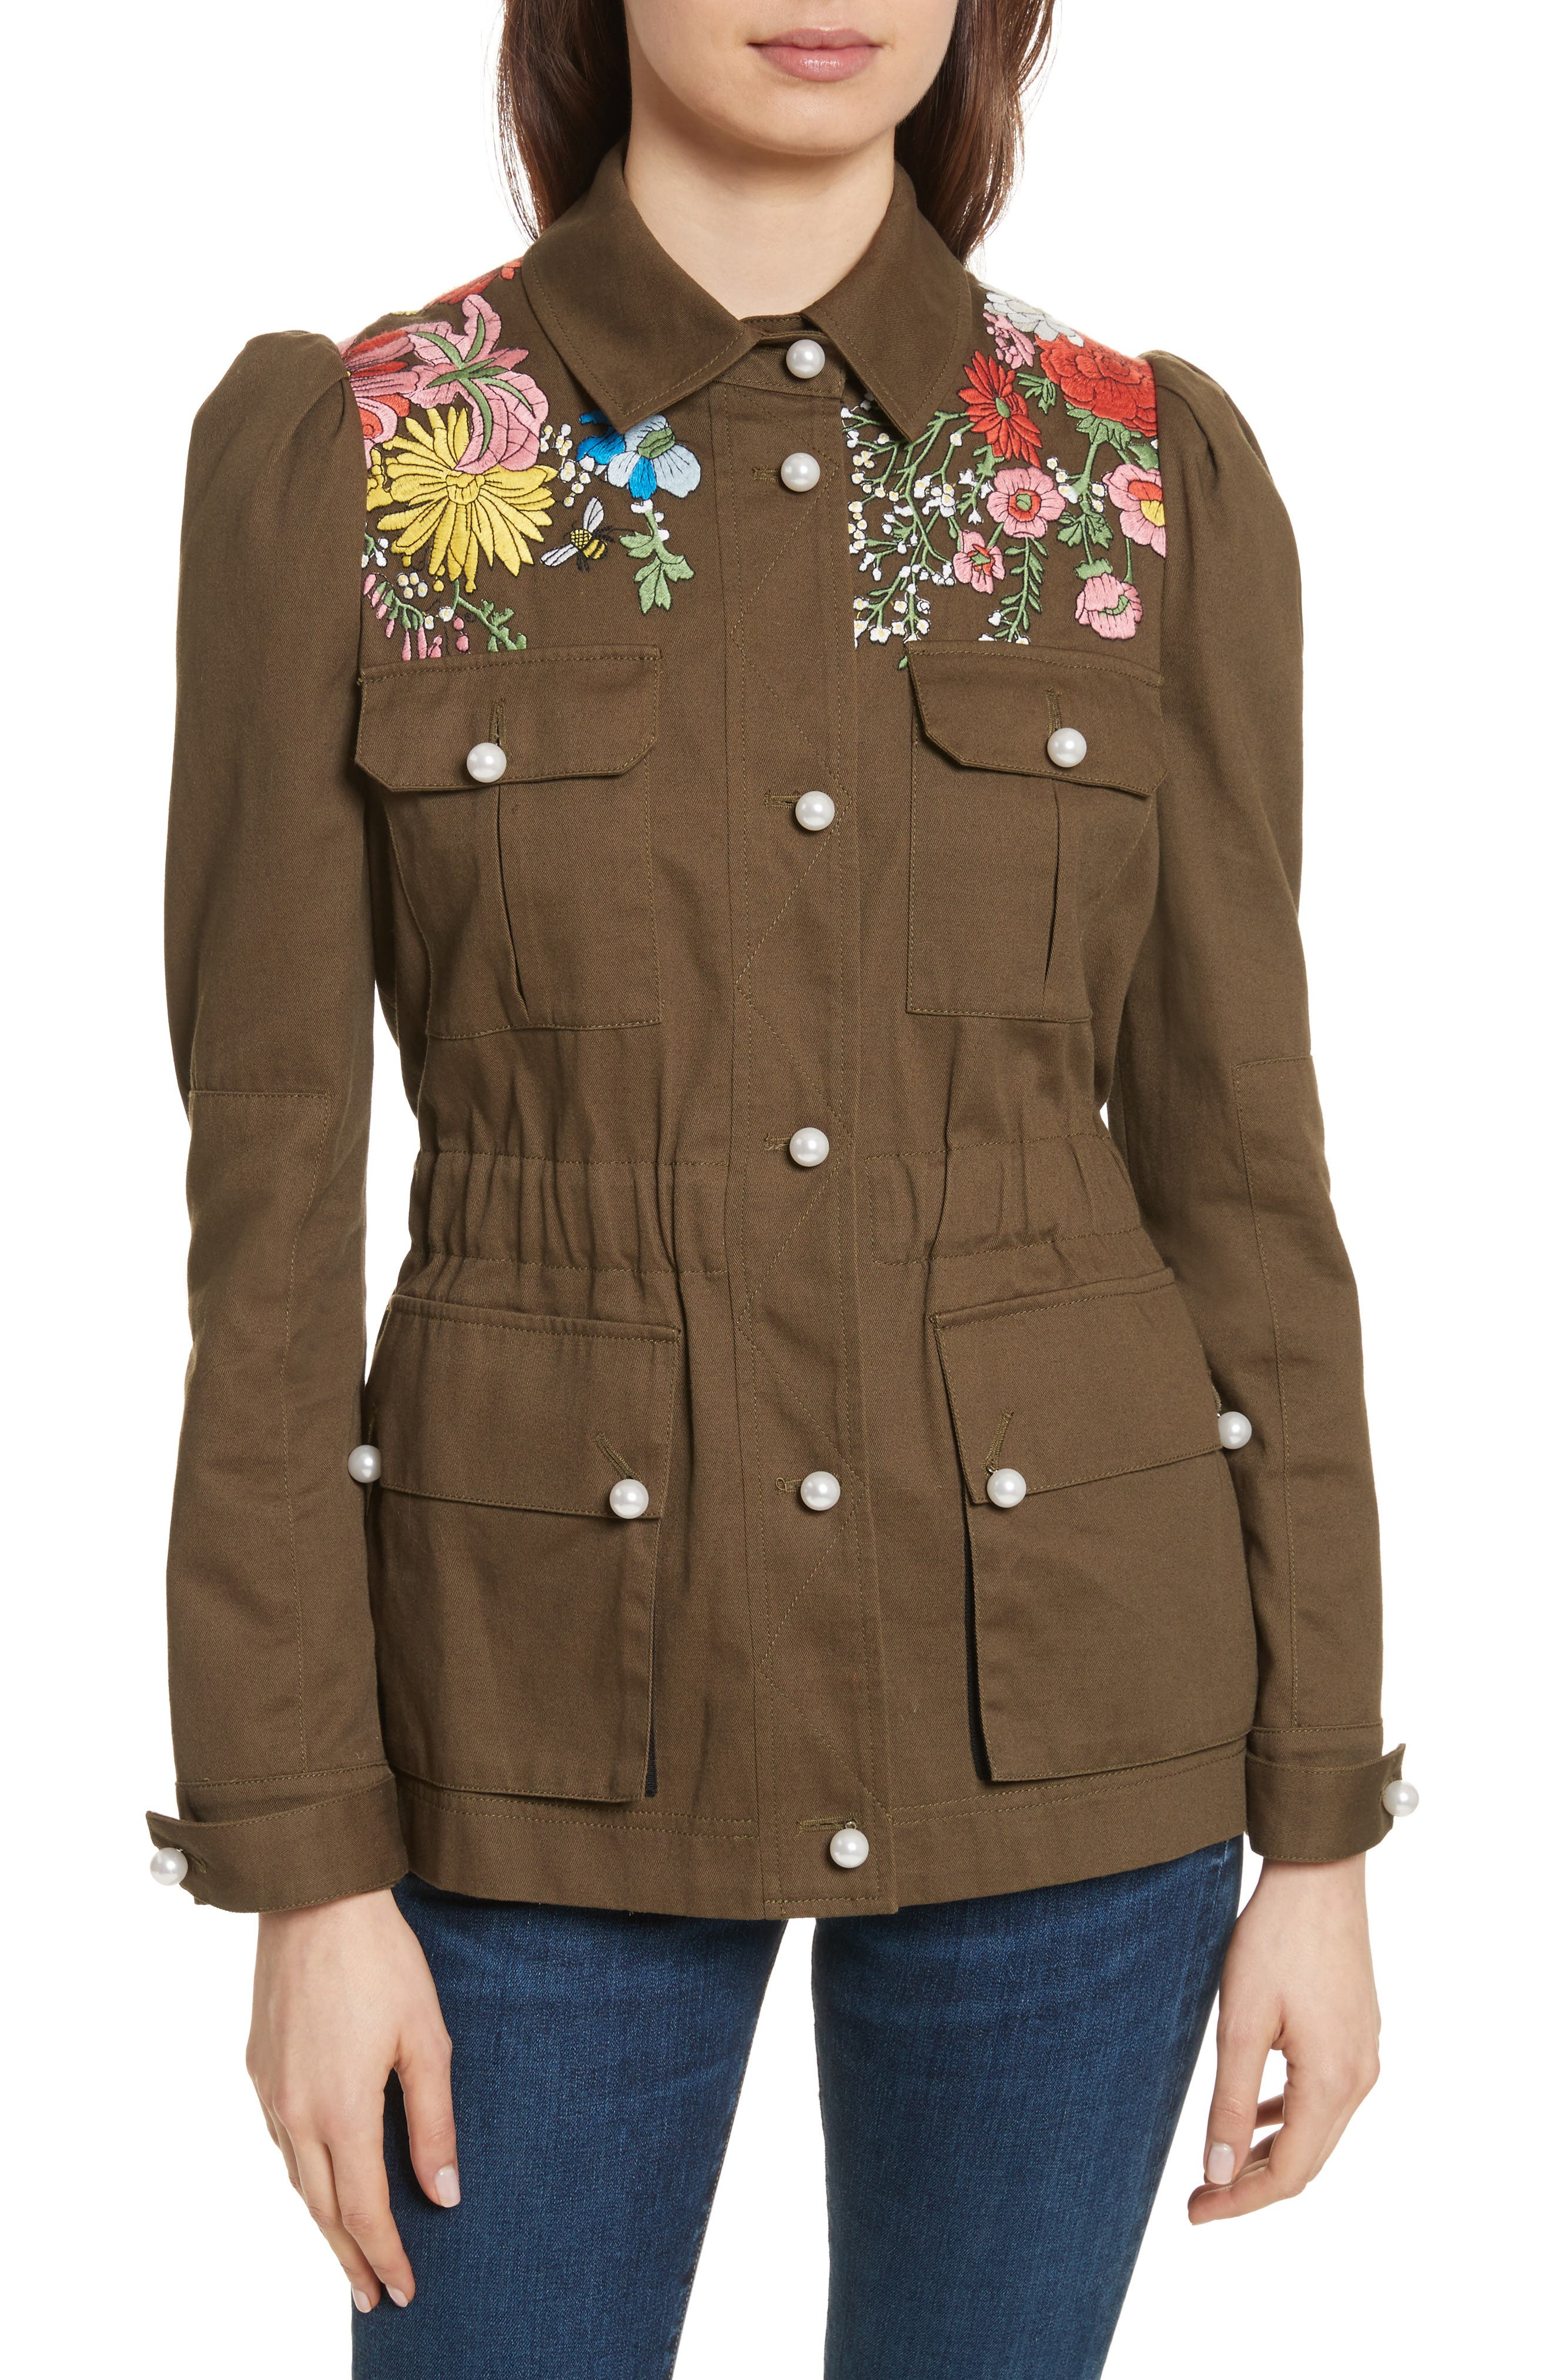 Huxley Floral Embroidered Safari Jacket,                         Main,                         color, Army